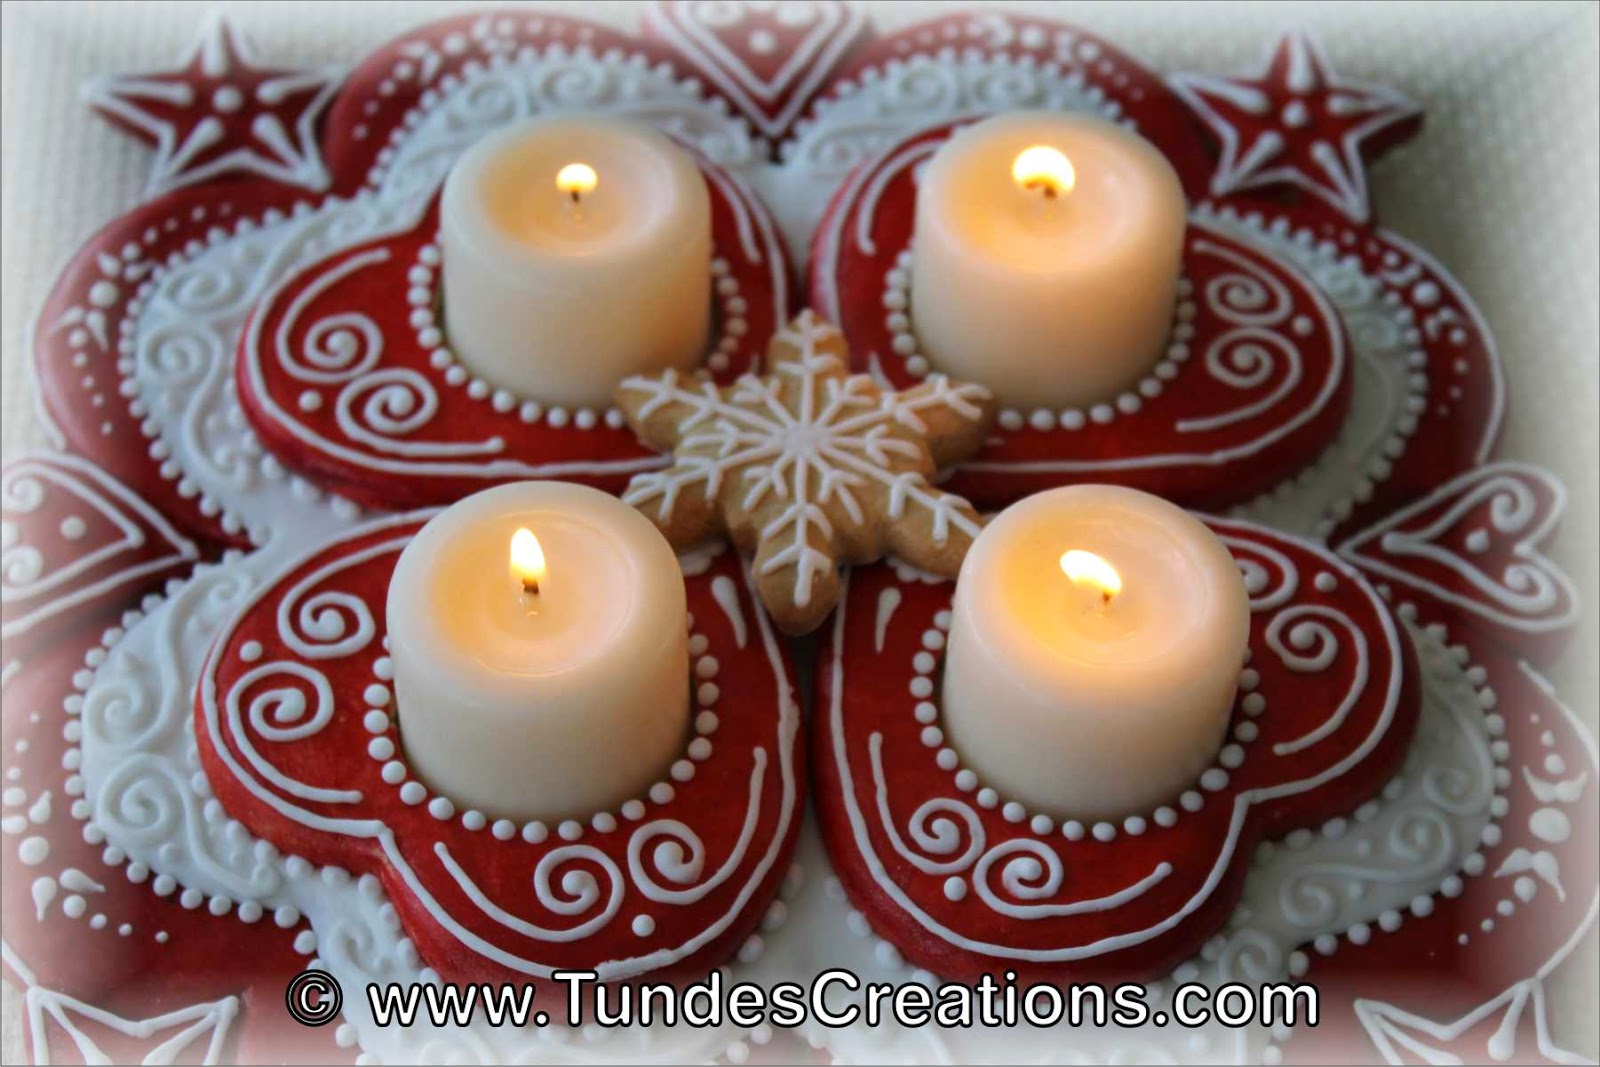 Advent wreath - Christmas centerpiece